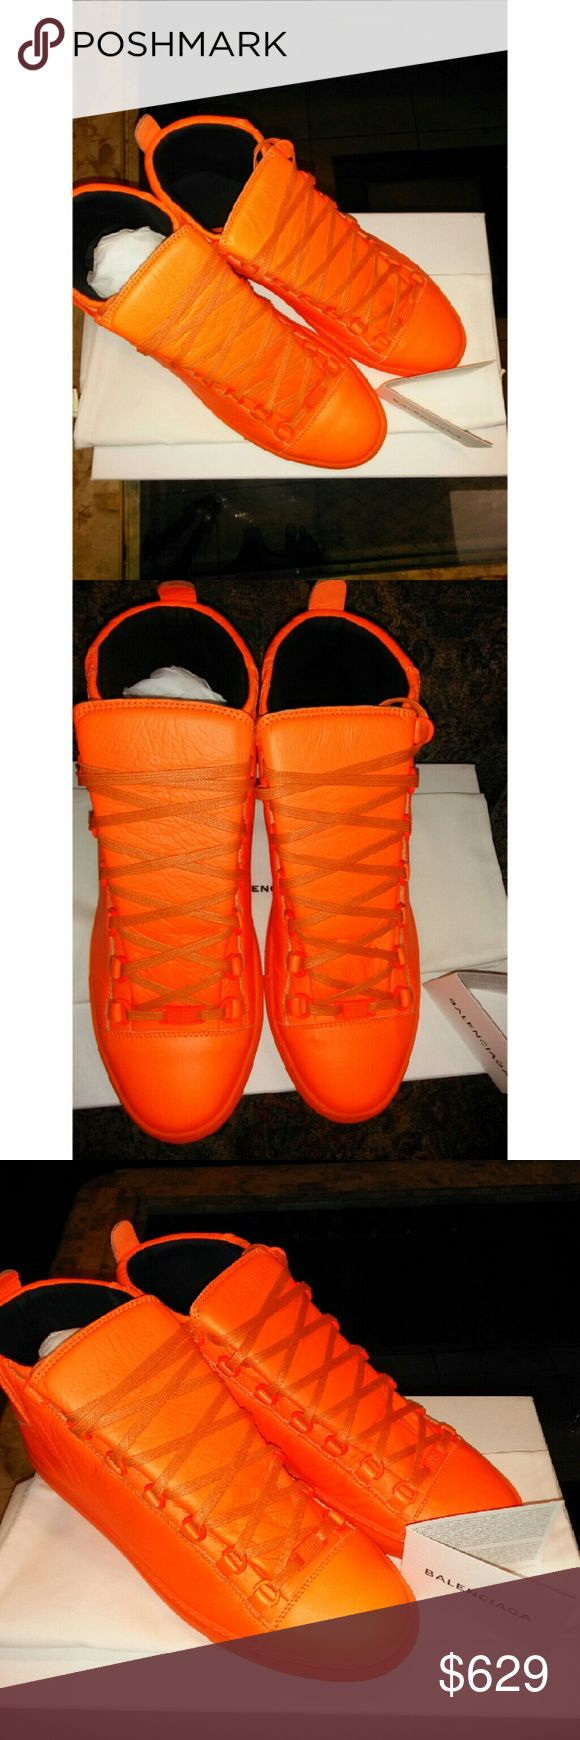 Men Neon Orange Balenciaga High Top Sneakers 43EU Men Balenciaga High Top Arena Sneakers  Several sizes available.   100% Authentic Brand New with Dust Bag and Box   #balenciaga #balenciagasneakers #balenciagaracerunner #balenciaganewseason #balenciagaauthentic #balenciagahightop #balenciagamensneakers #balenciagawhitesneakers Balenciaga Shoes Sneakers